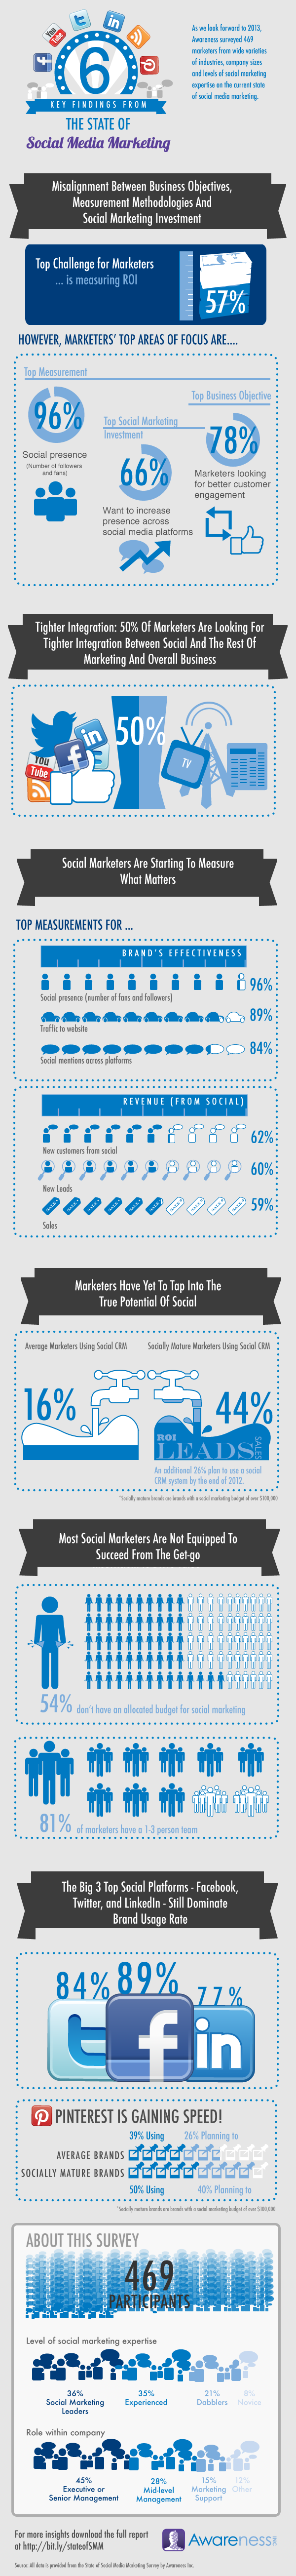 awareness-the-state-of-smm-october-infographic